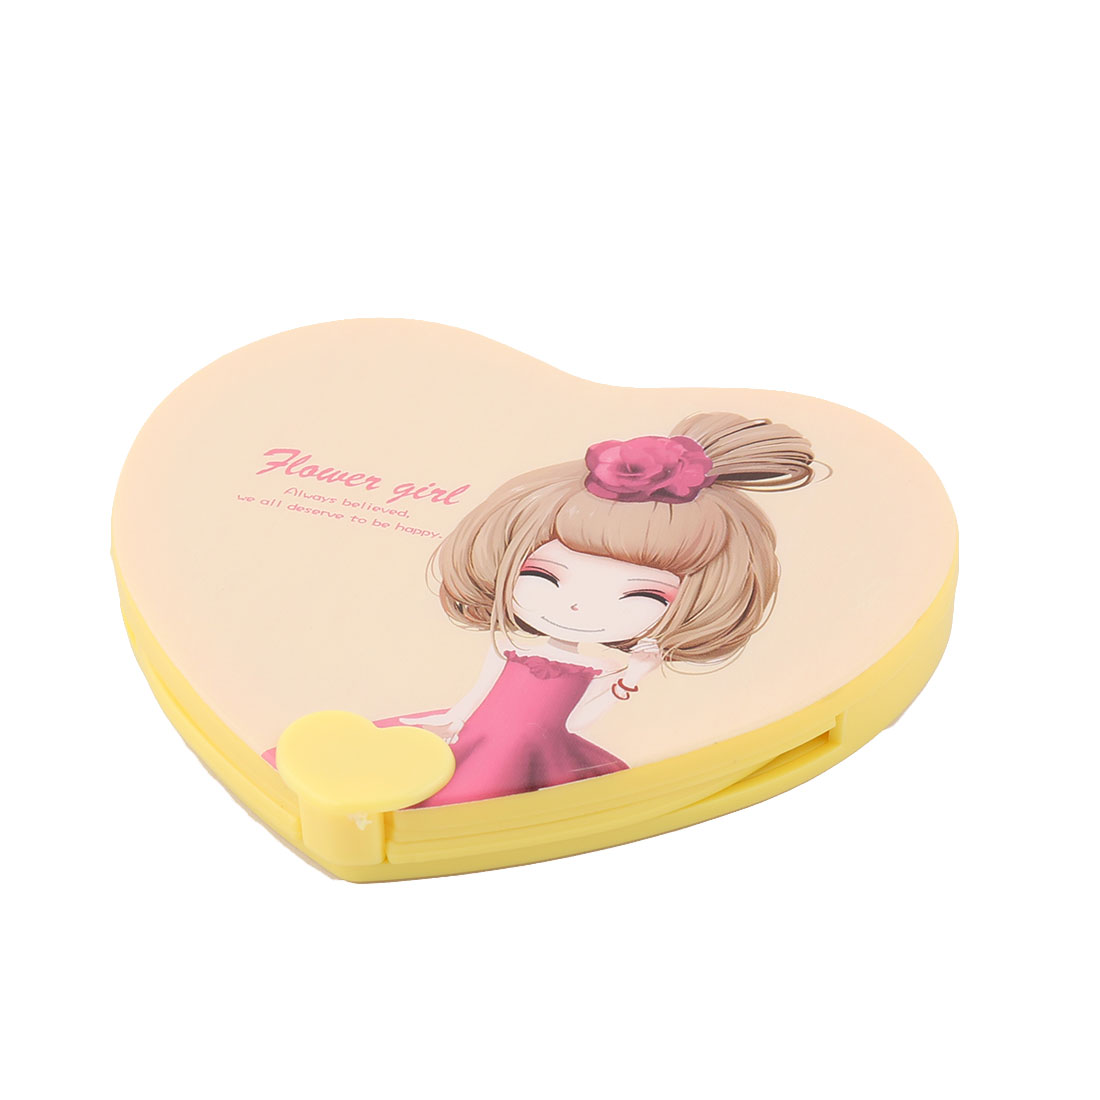 Household Woman Plastic Heart Shaped Folding Mini Makeup Cosmetic Mirror Comb 2 in 1